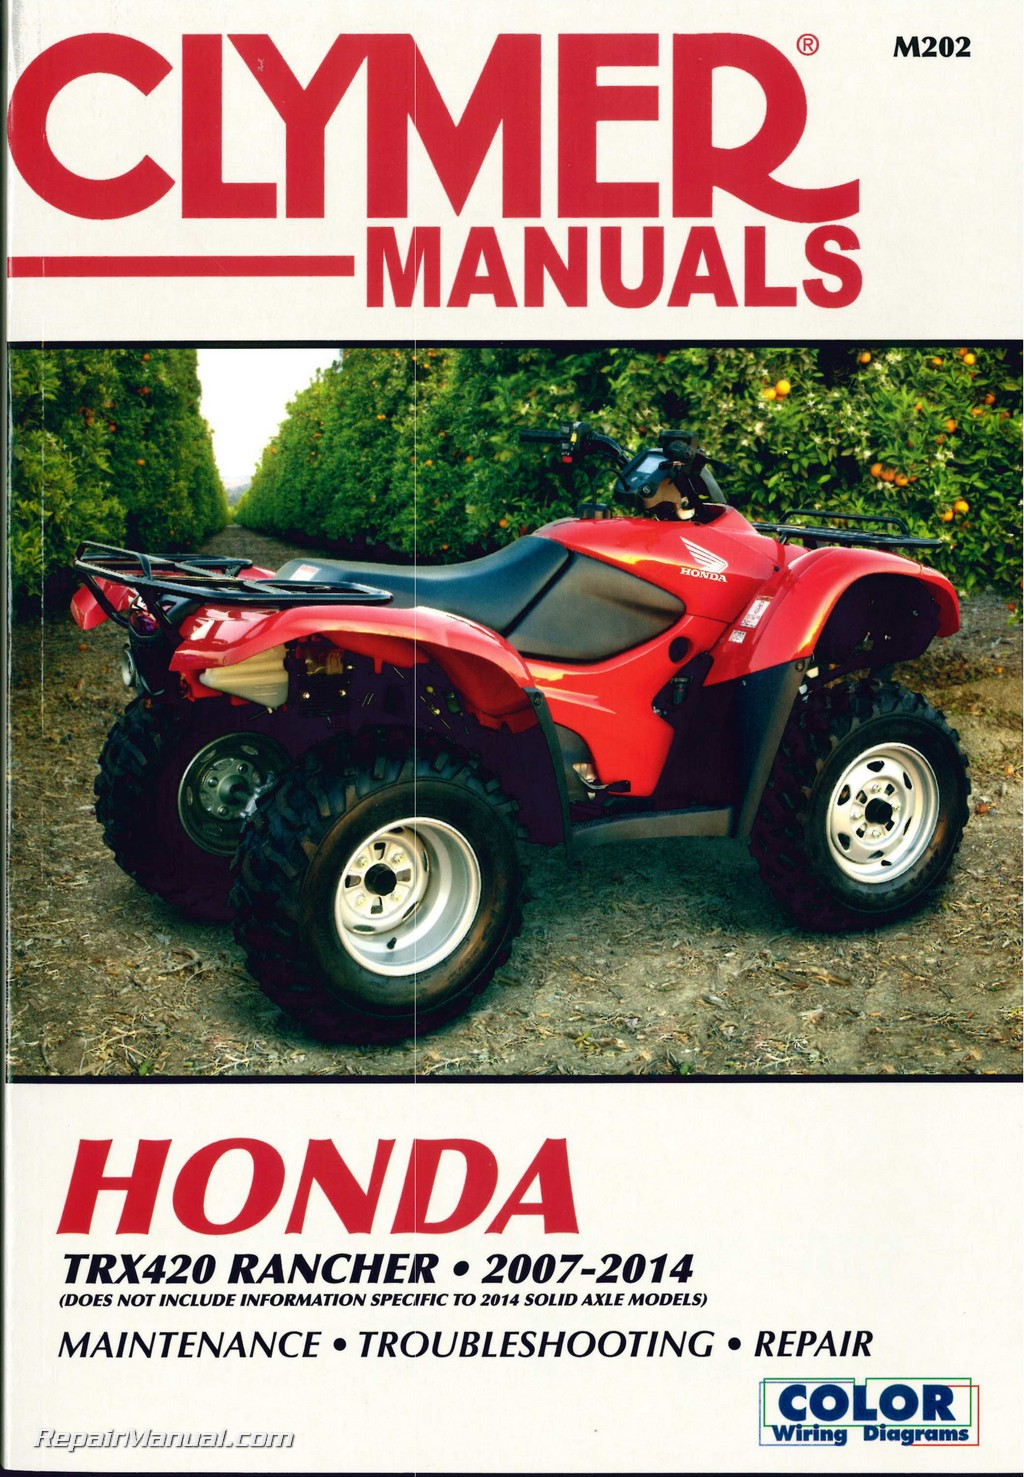 Honda TRX420 Rancher ATV Clymer Service Manual 2007-2014